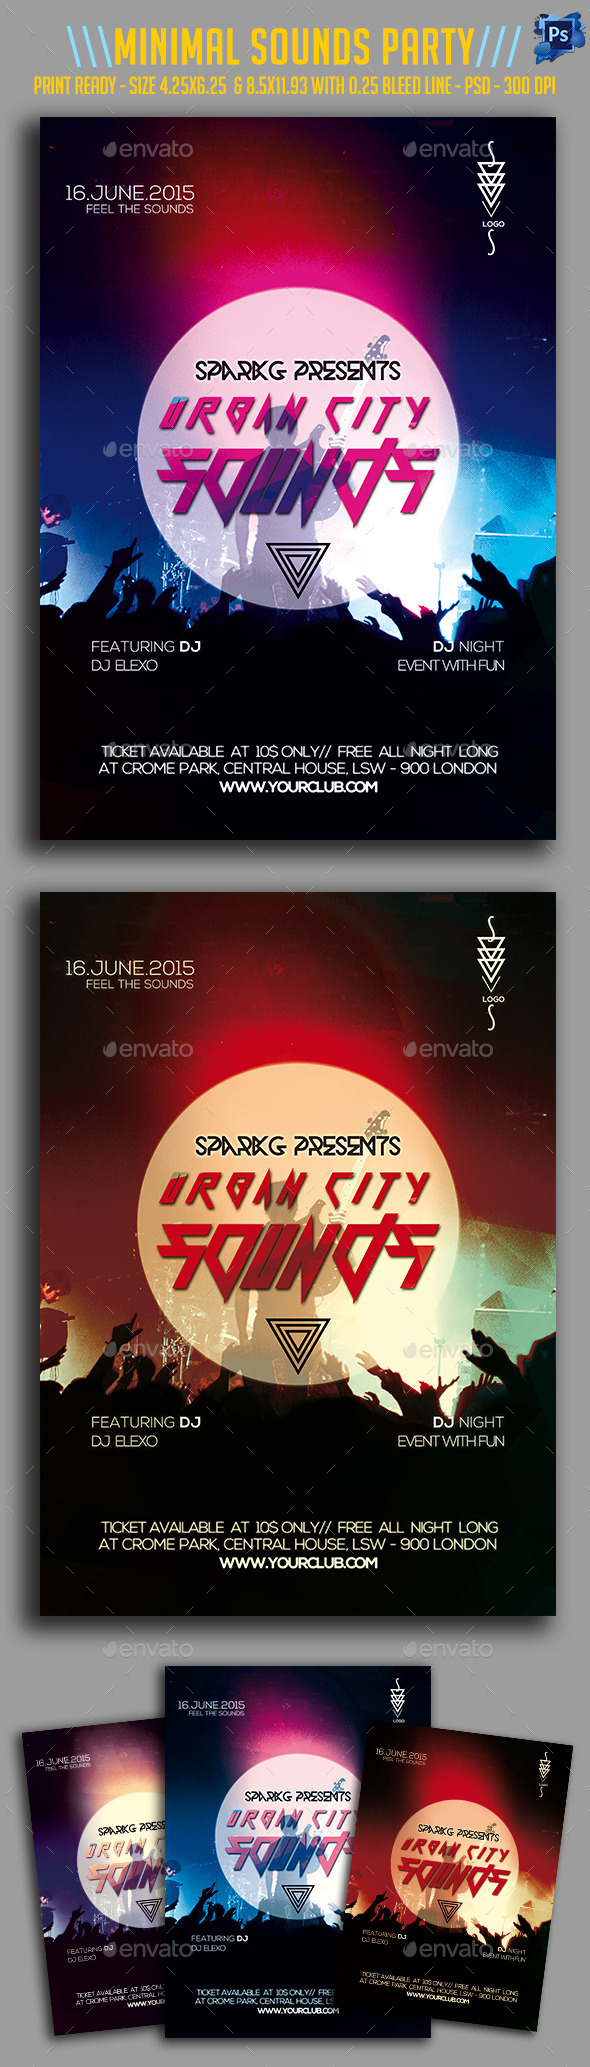 Urban City Sounds Party Flyer - Clubs & Parties Events